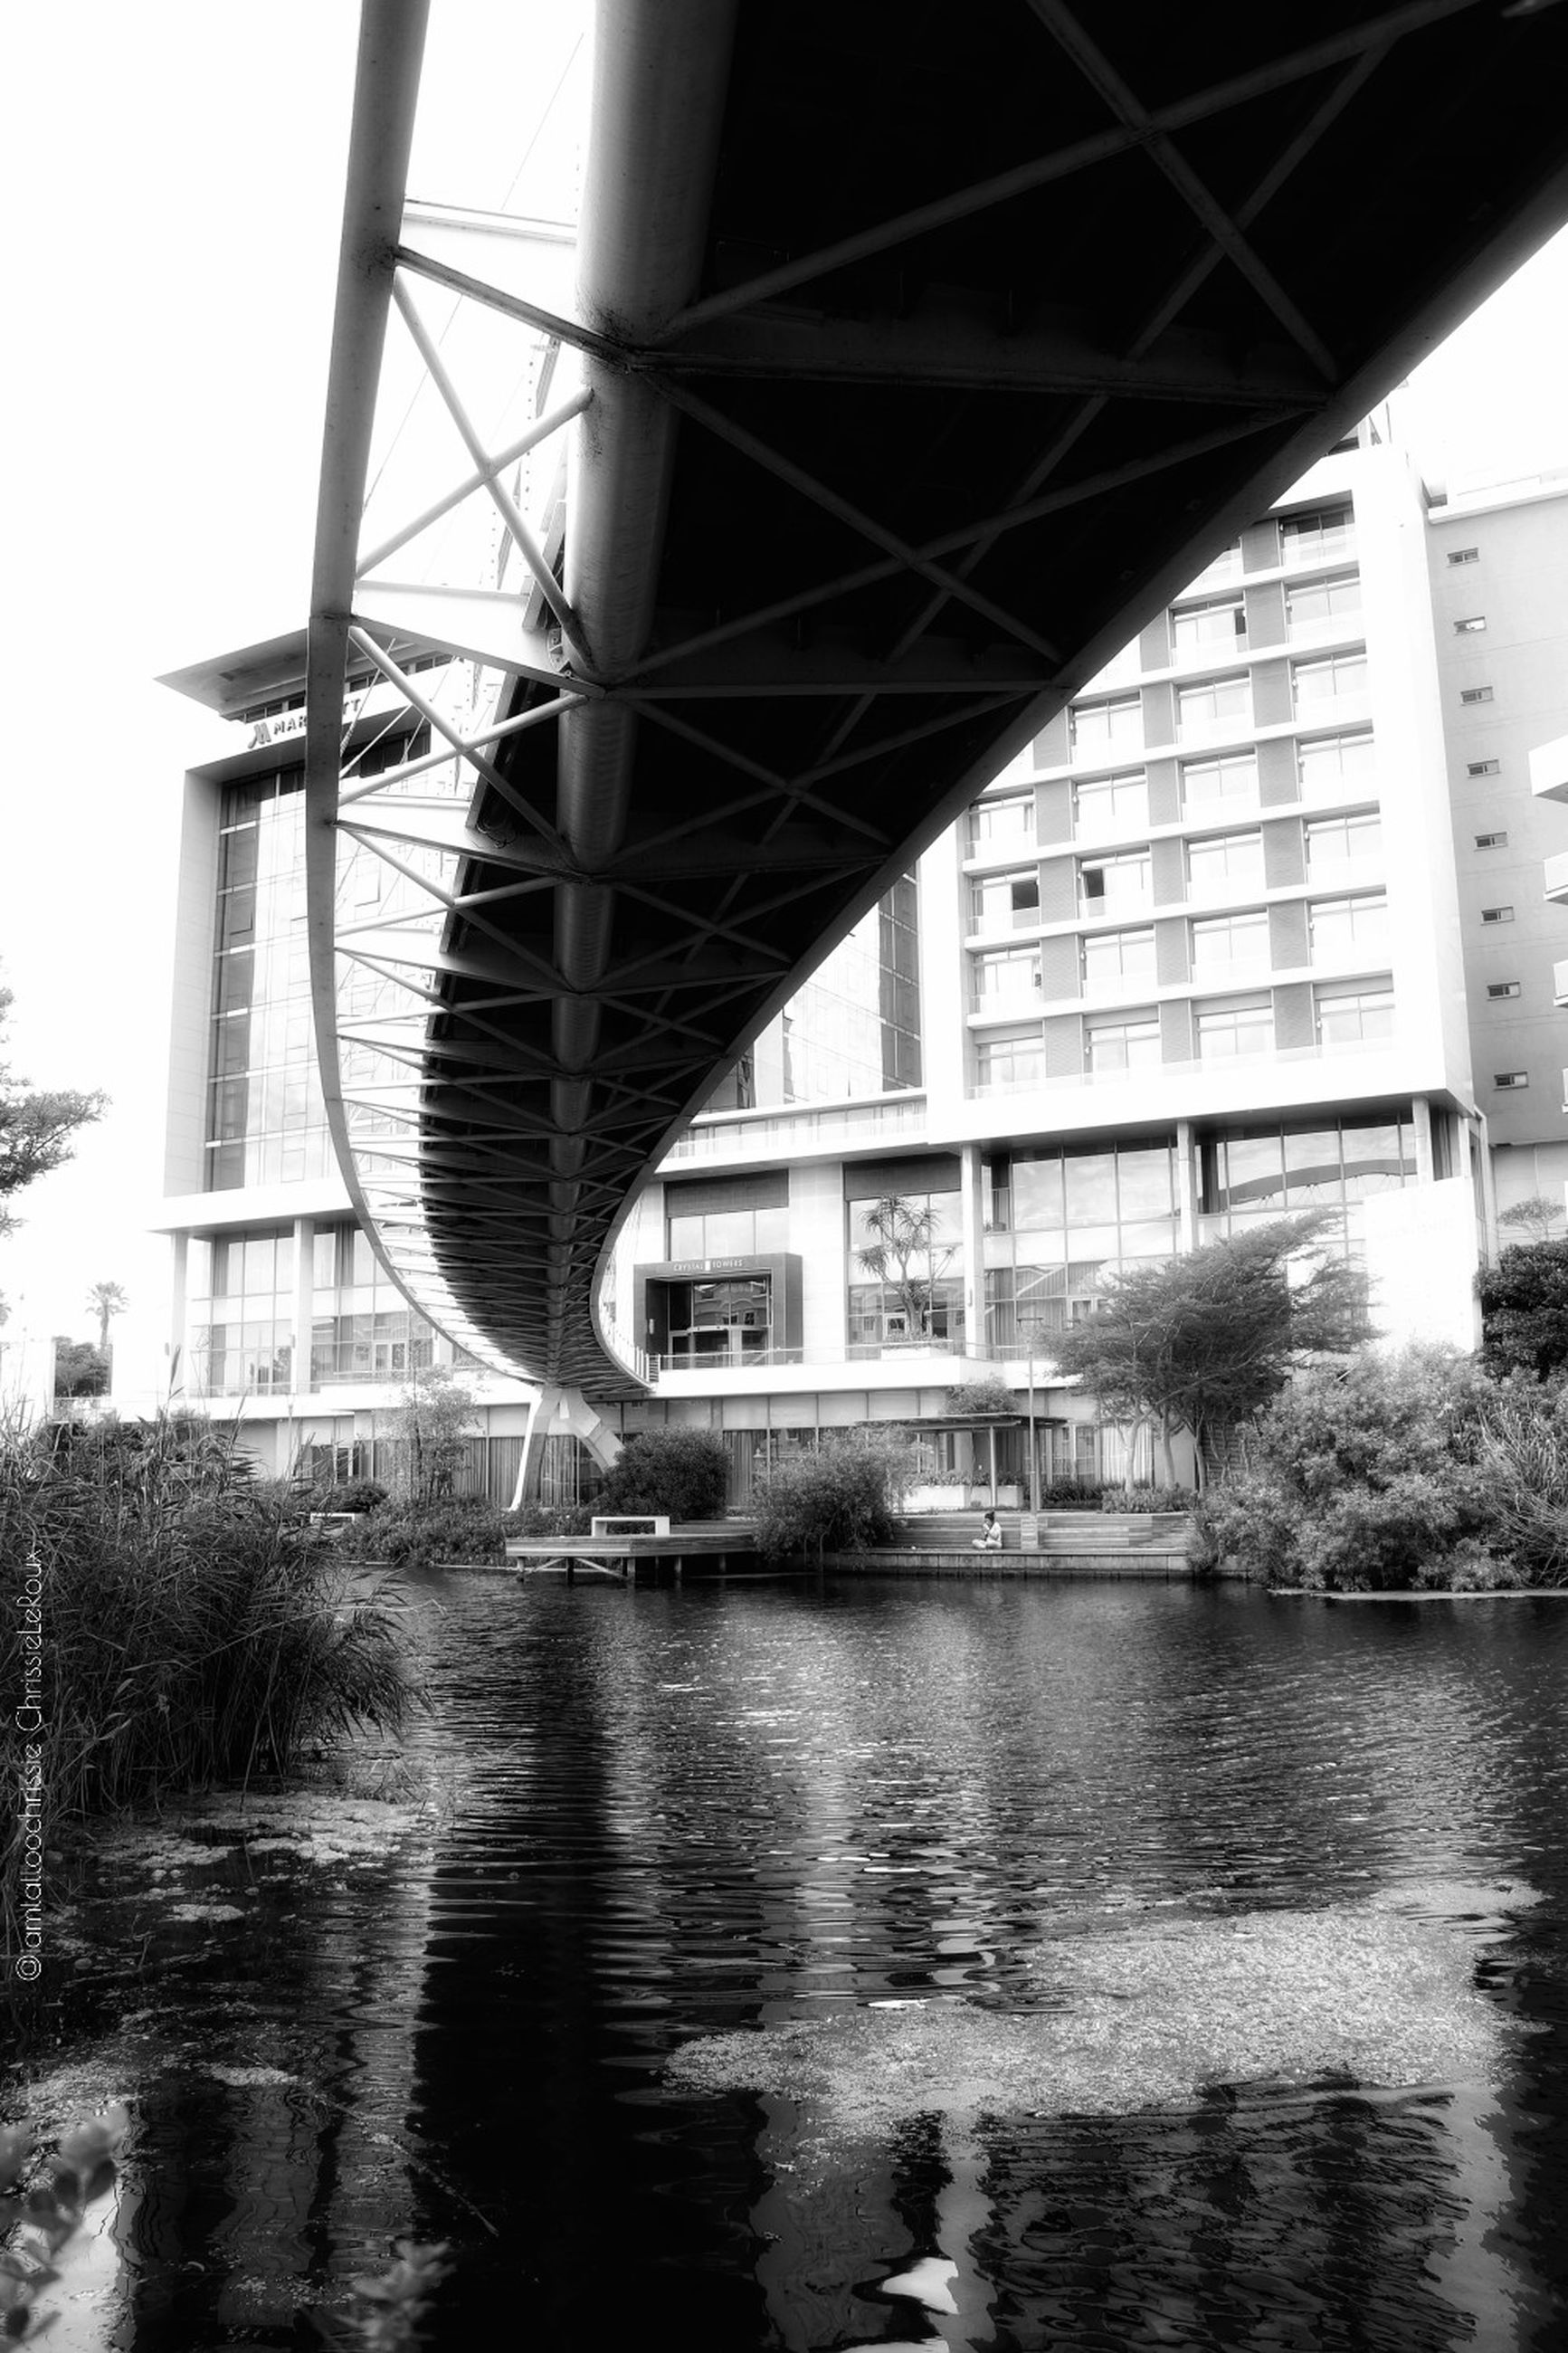 architecture, built structure, water, building exterior, bridge, river, connection, bridge - man made structure, city, transportation, no people, nature, waterfront, reflection, day, building, outdoors, sky